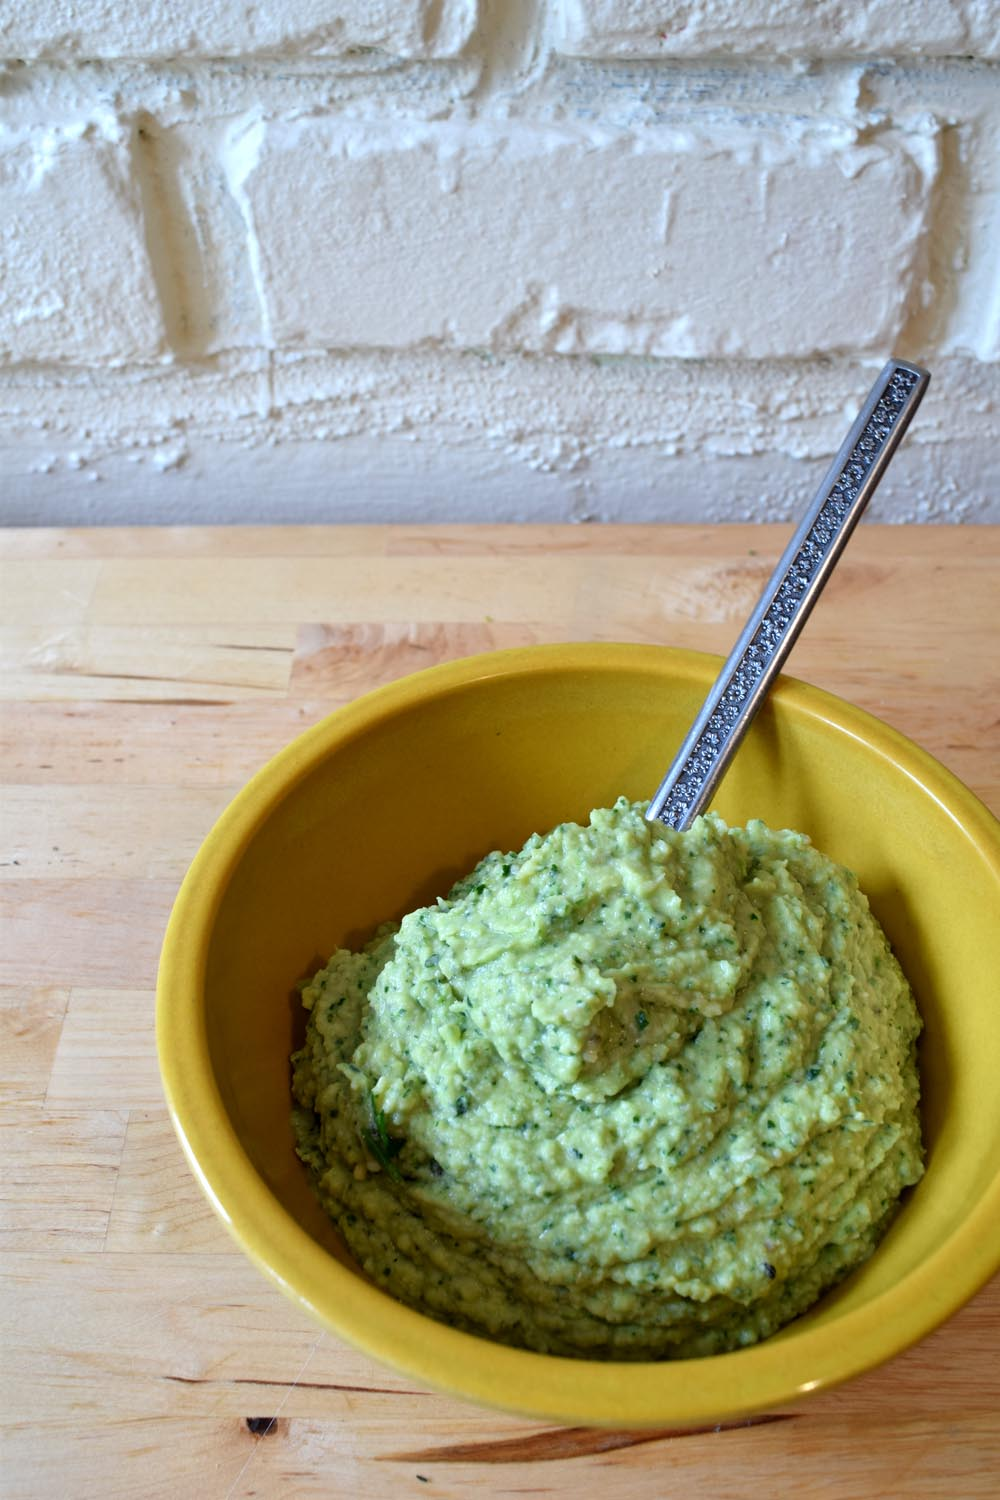 Parsley vegan hummus. Recipe for hummus. Hippie hummus.